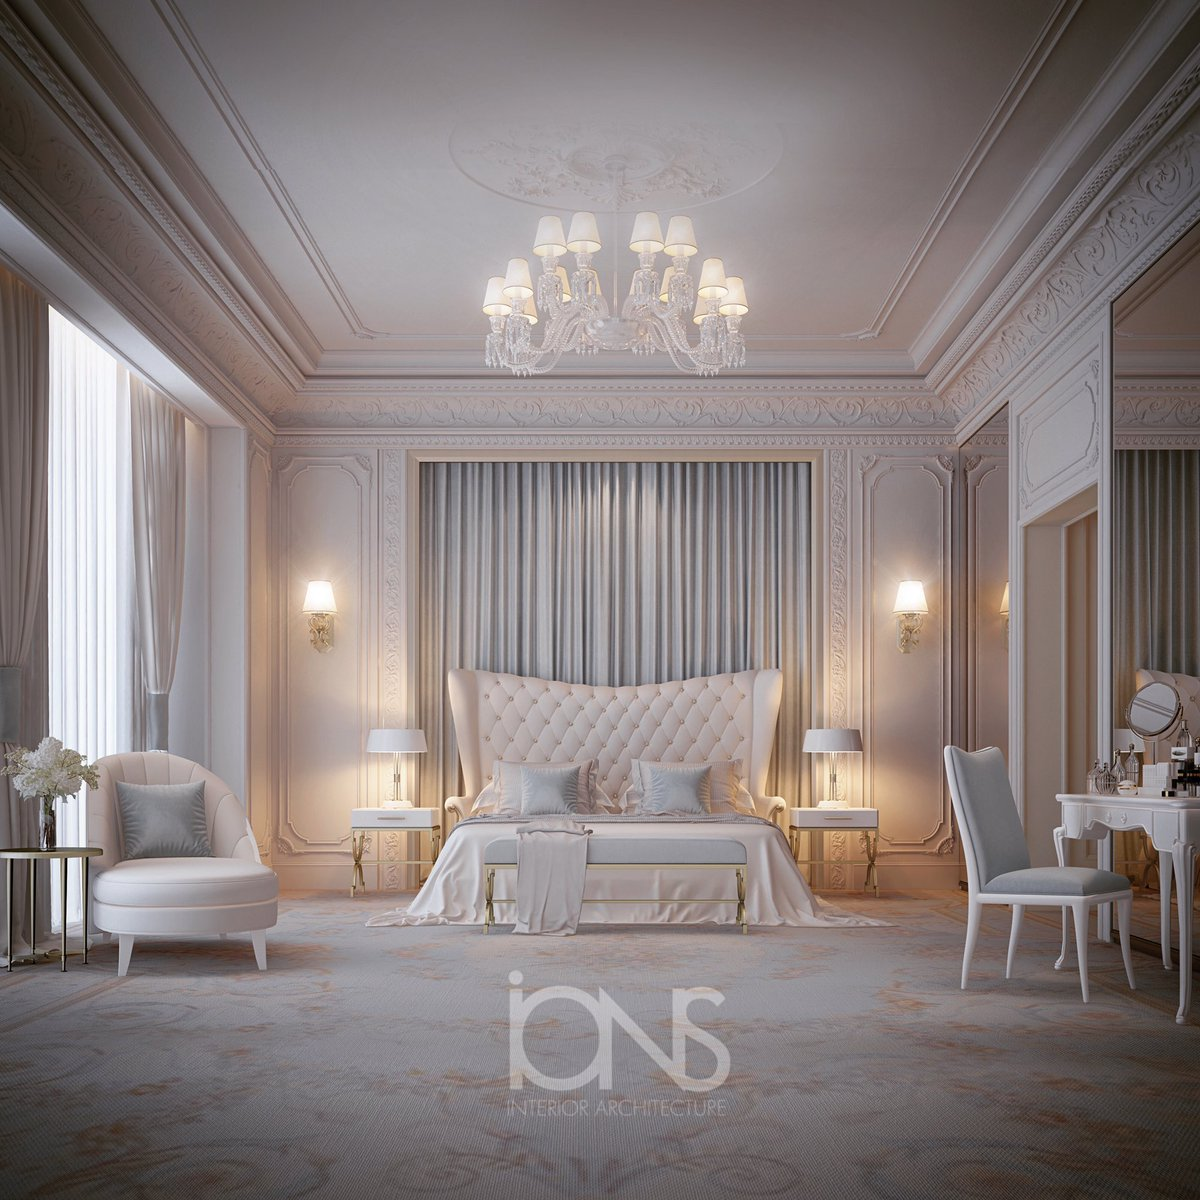 Ions Interior Design Dubai ions design (@ionsdesign) | twitter